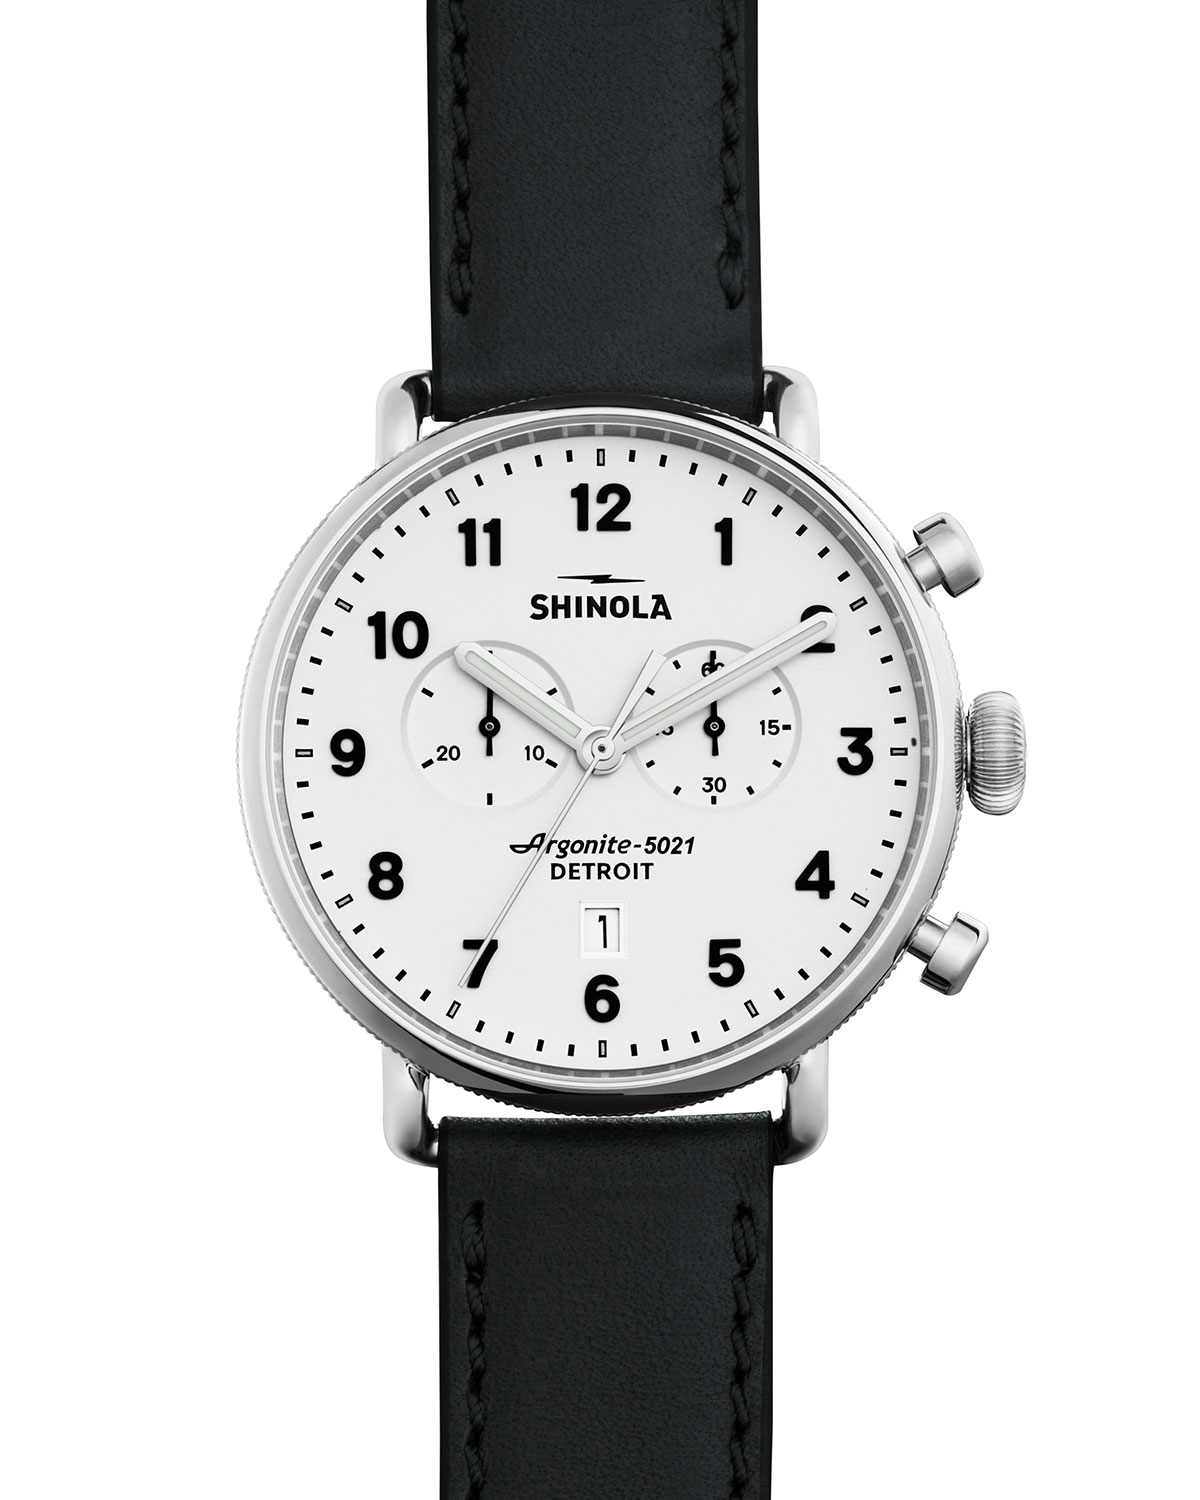 43mm Canfield Chronograph Watch, Black/White